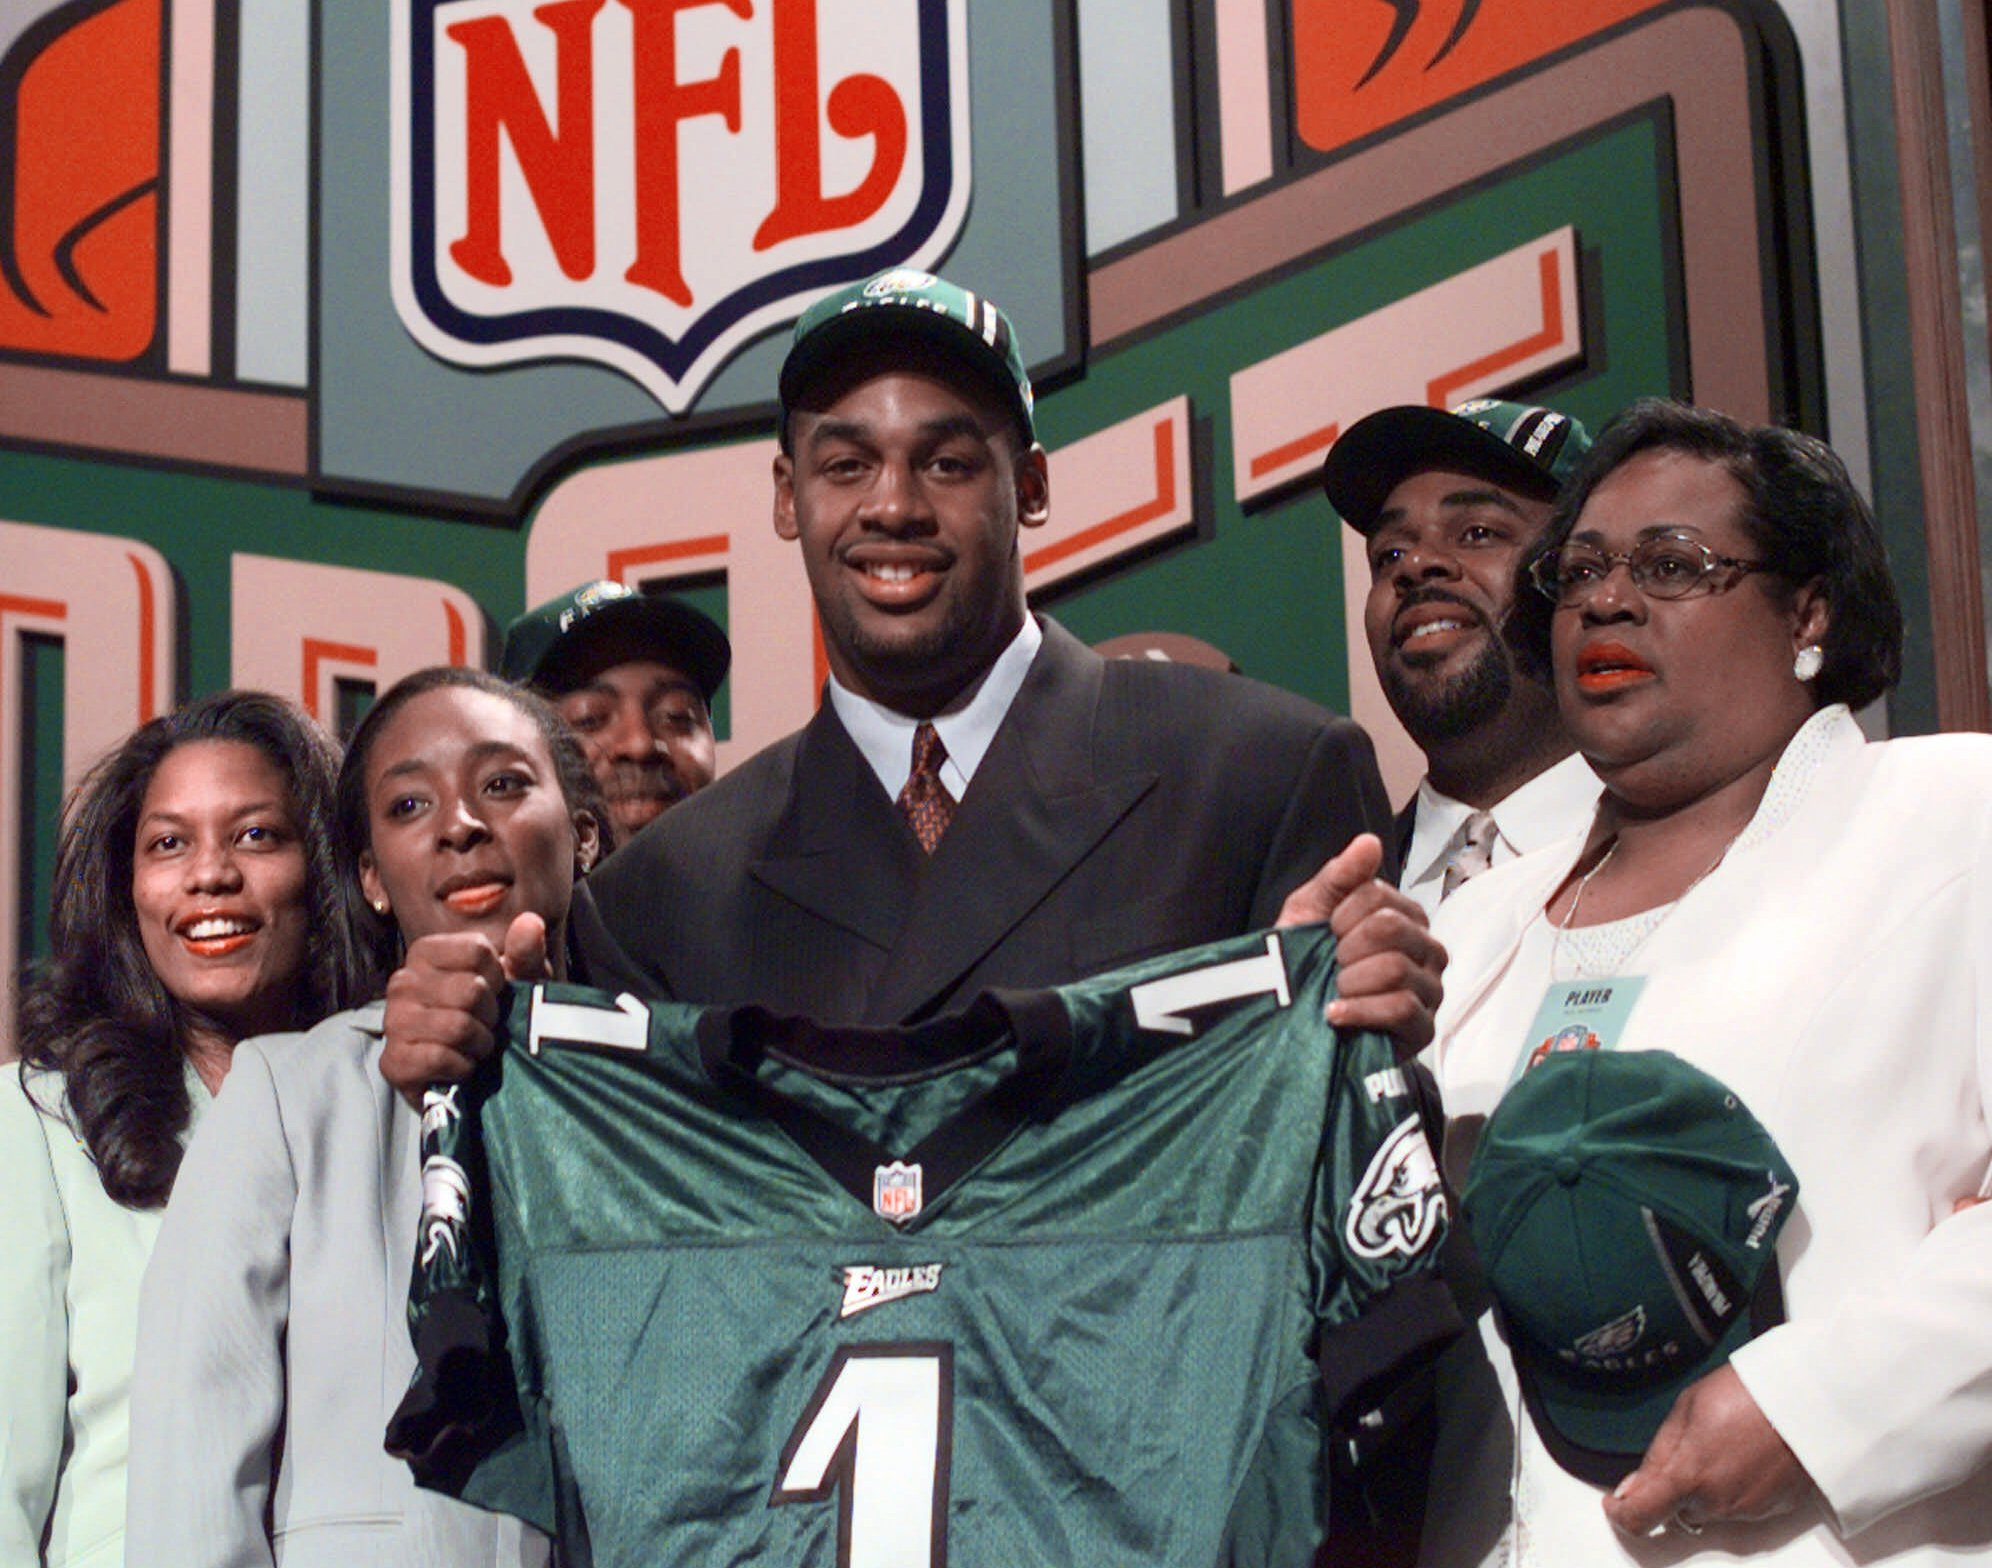 NFL Draft: Donovan McNabb hasn't forgotten Eagles fans booing him on draft day 20 years ago | 'They'll regret that moment'